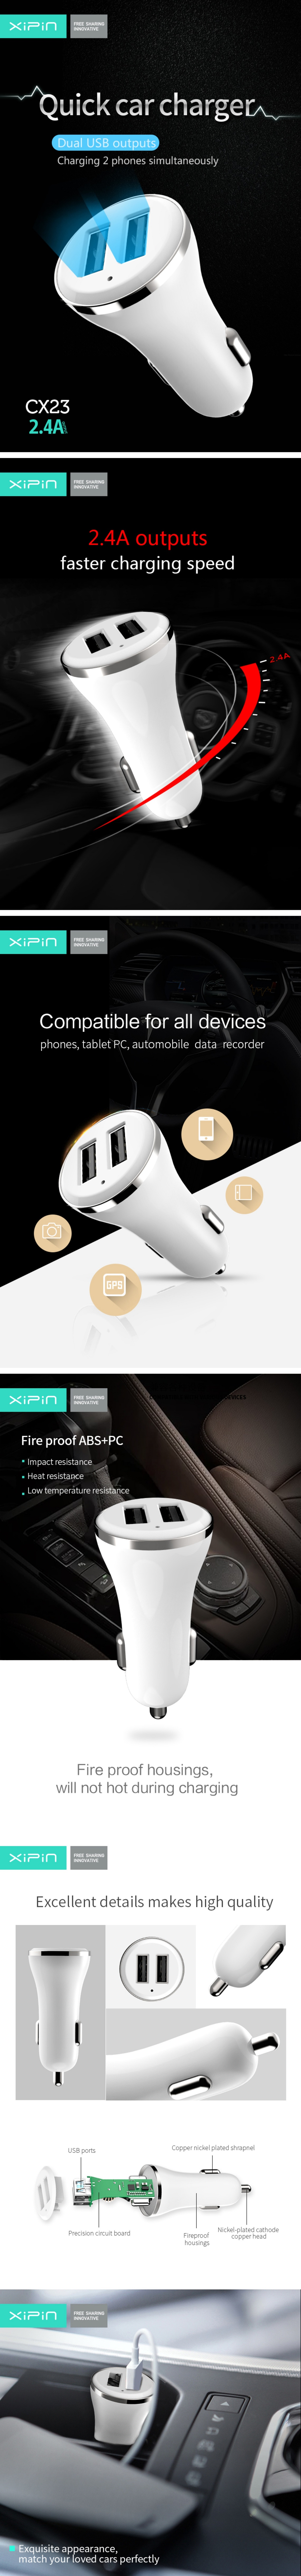 Xipin Quick Car Charger 5V 2.4A Dual USB Output Car Charger Mini Design White CX23